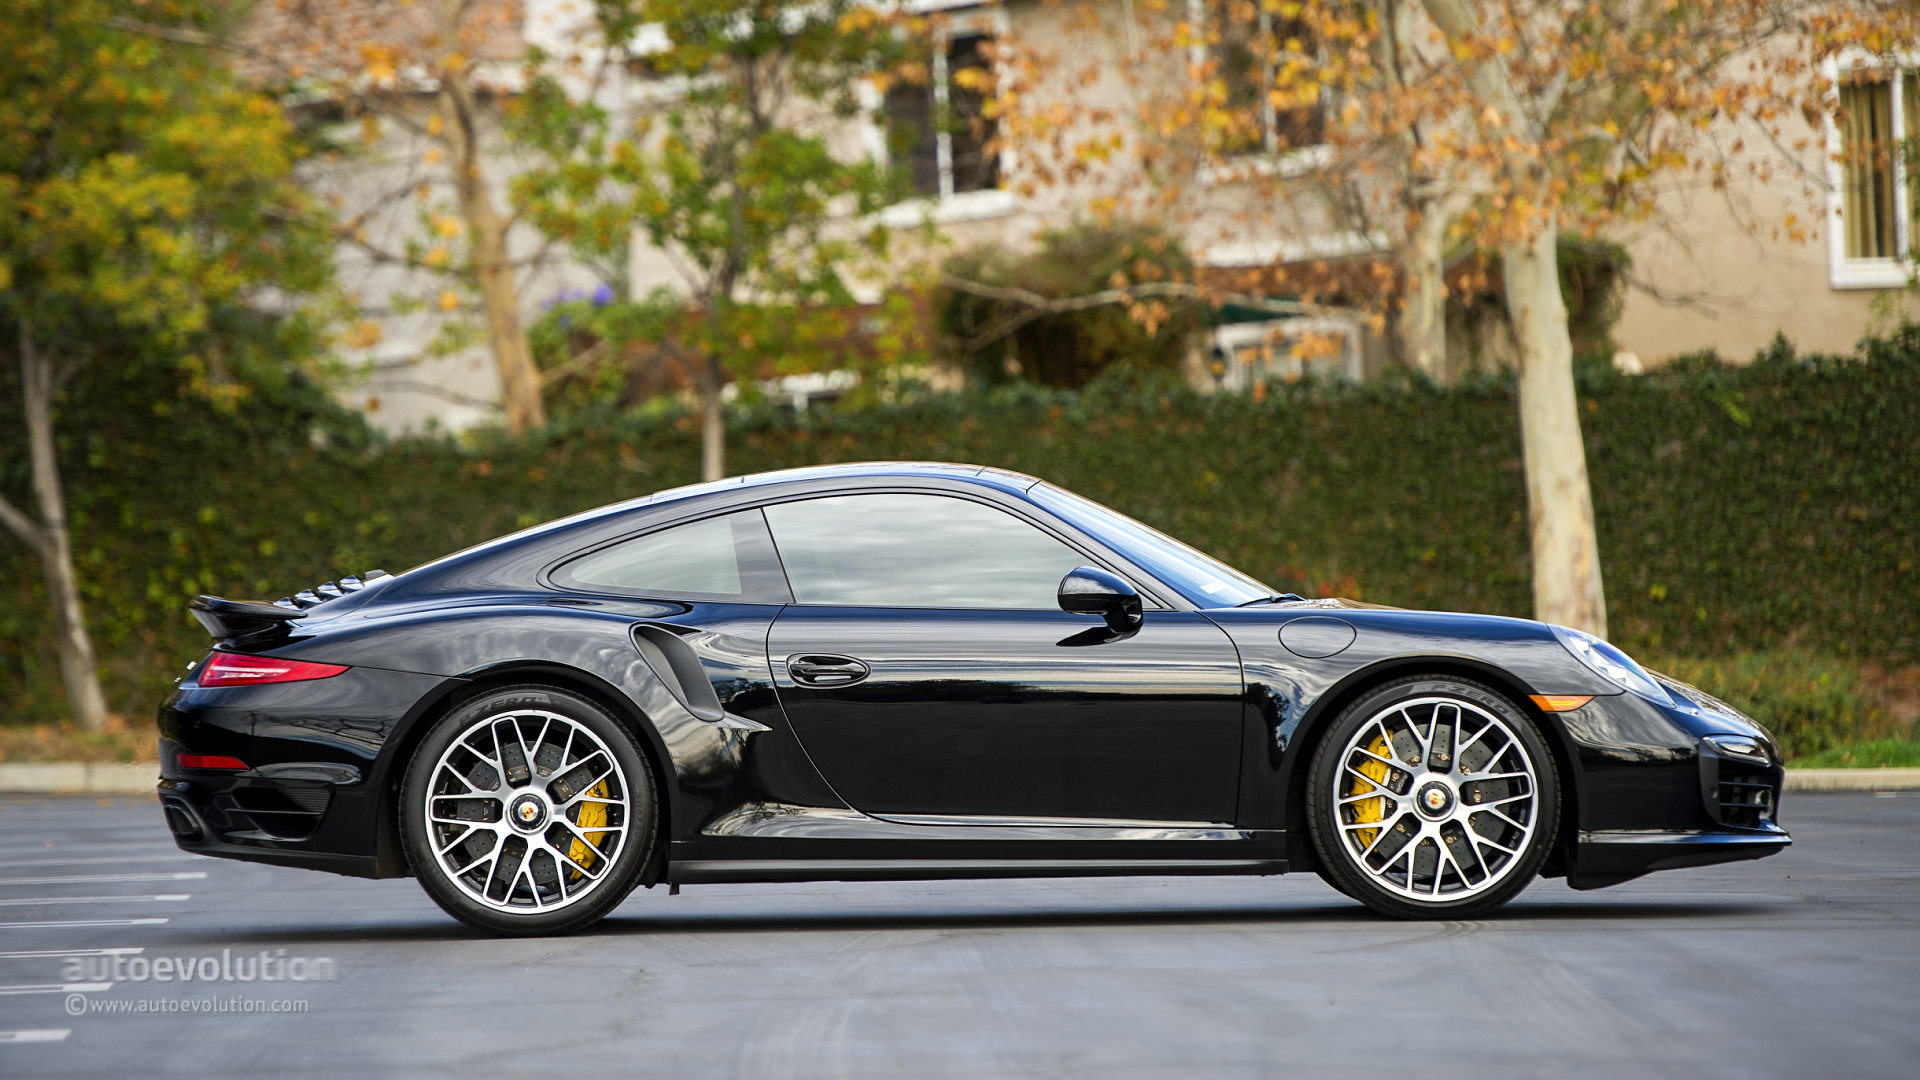 2014 porsche 911 turbo s review autoevolution. Black Bedroom Furniture Sets. Home Design Ideas